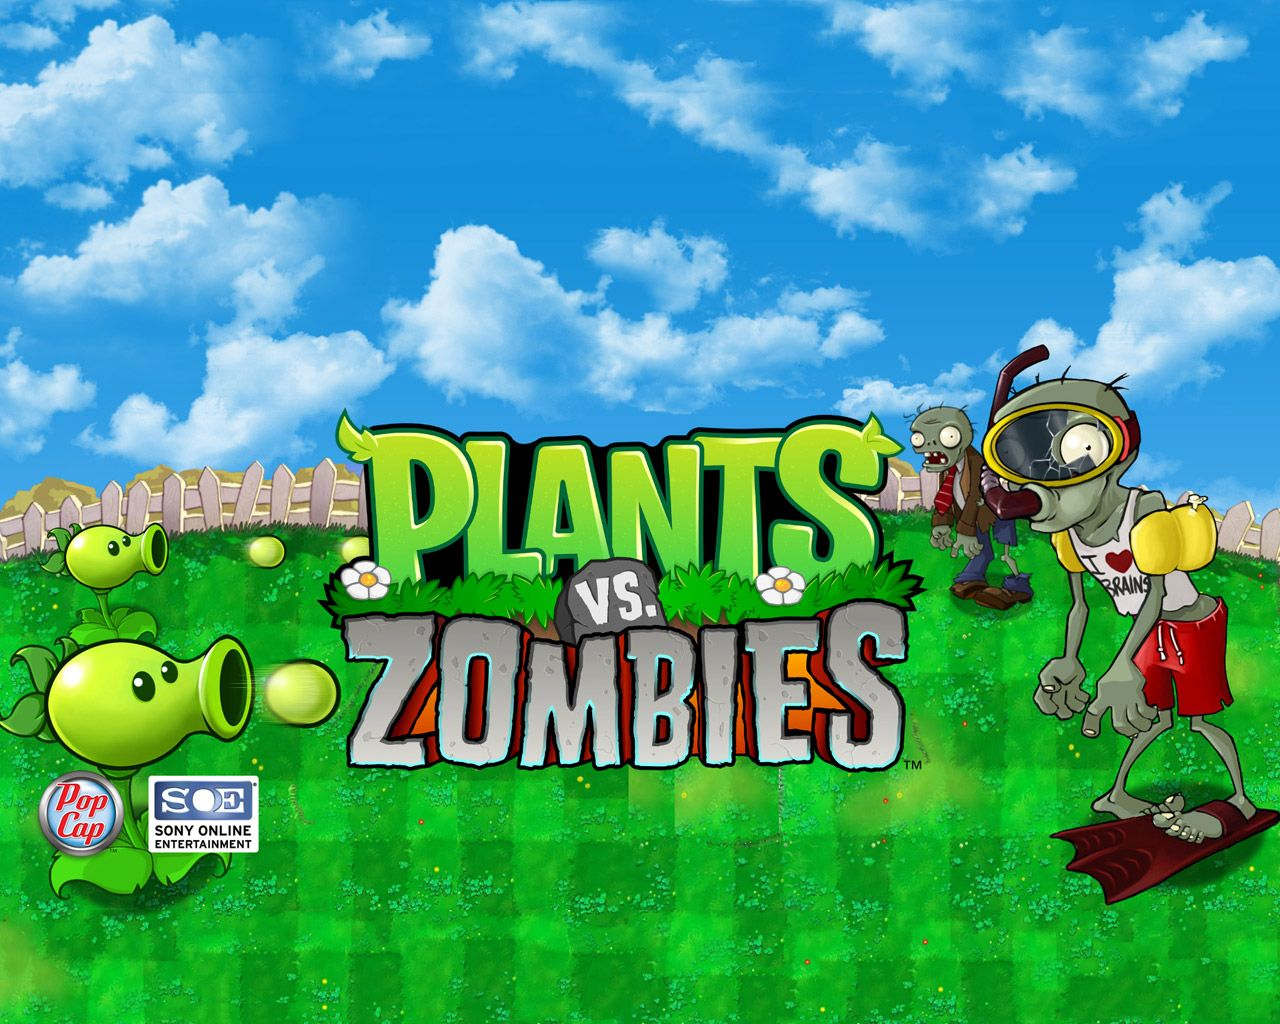 undefined plants vs zombies wallpaper (41 wallpapers) | adorable